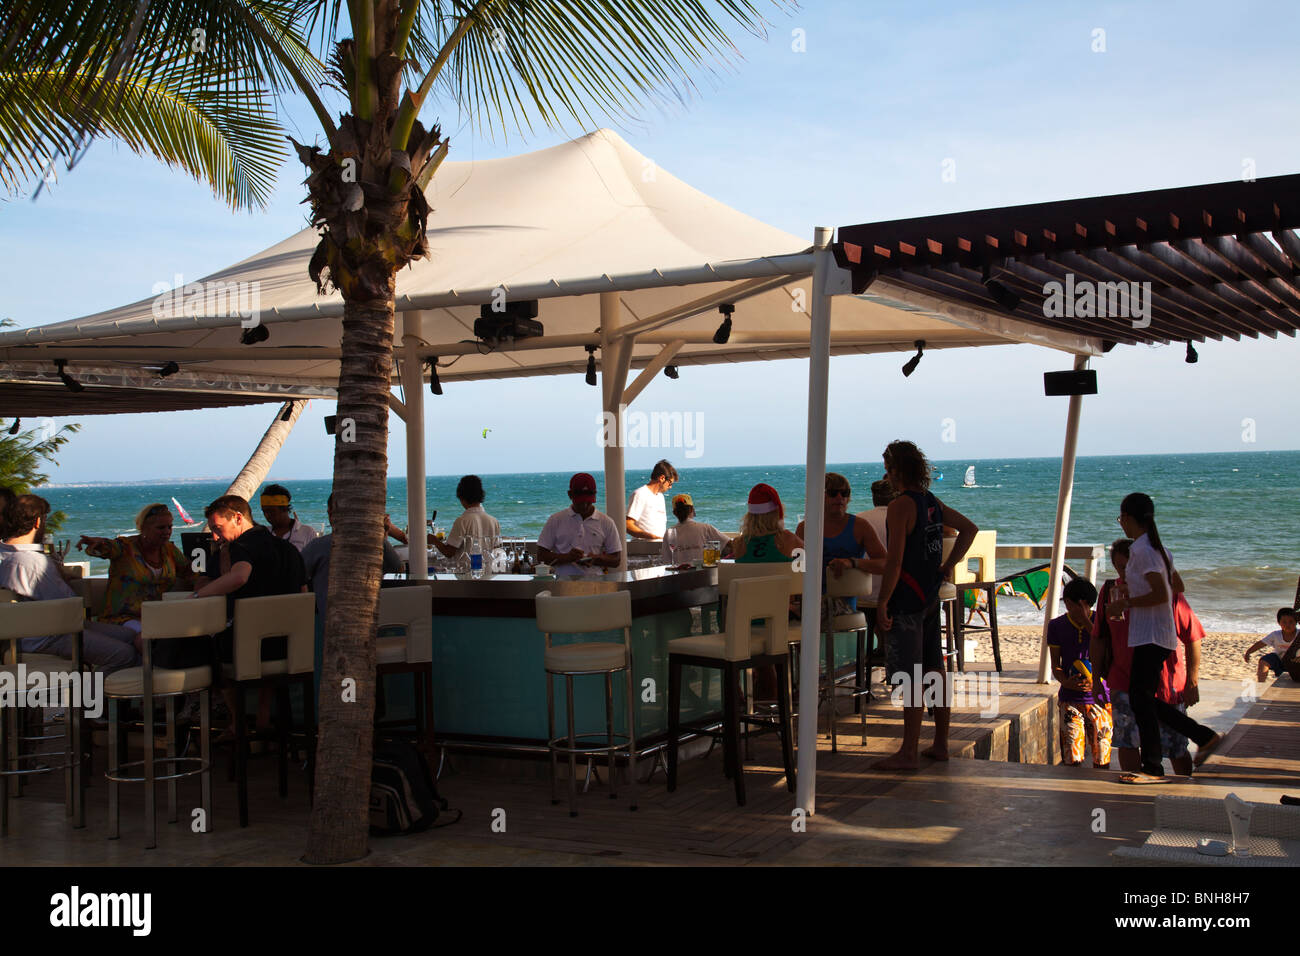 Travellers at bar at hot spot beach bar Shankara and view of sea and windsurfers - Stock Image